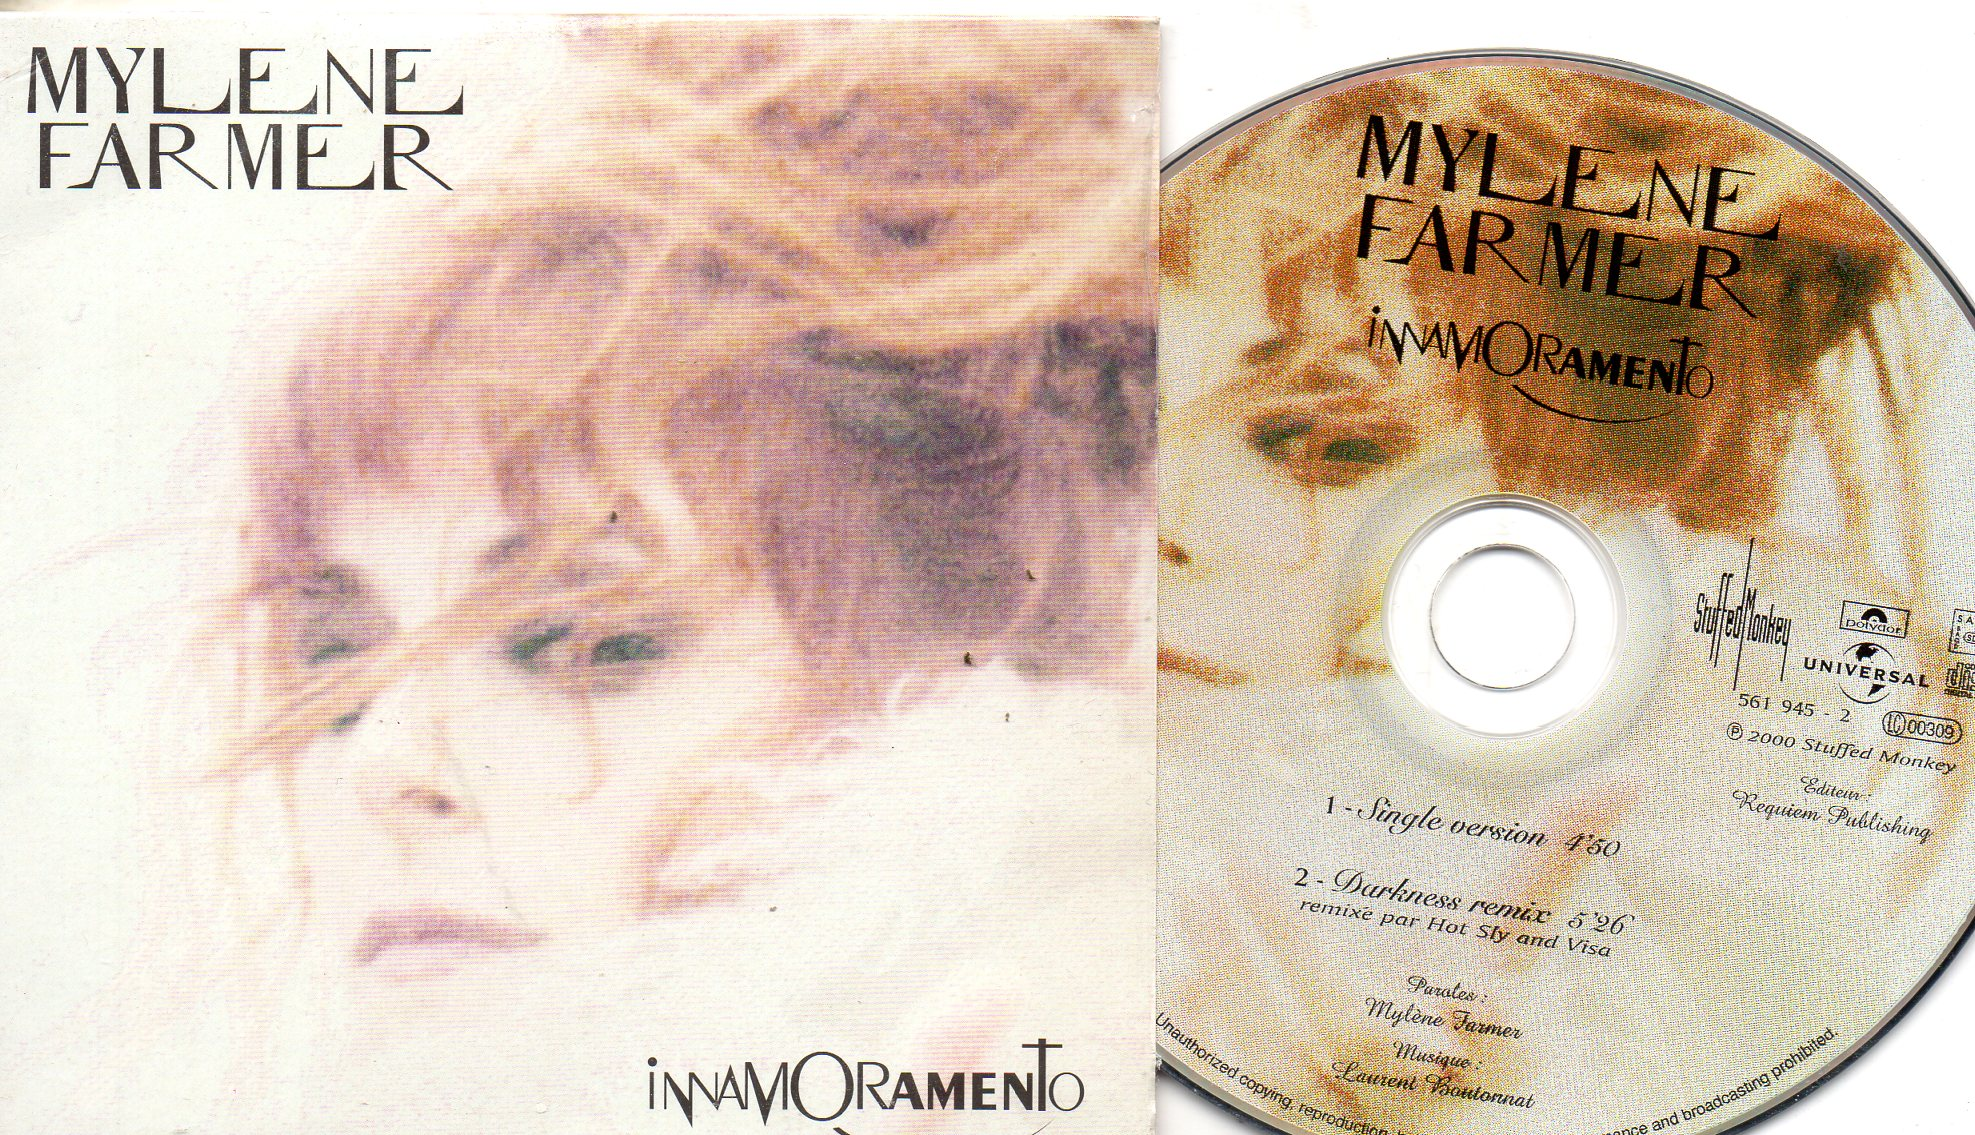 Mylène FARMER - Inamoramento 2 Tracks Picture Label Ltd Edition Card Sleeve